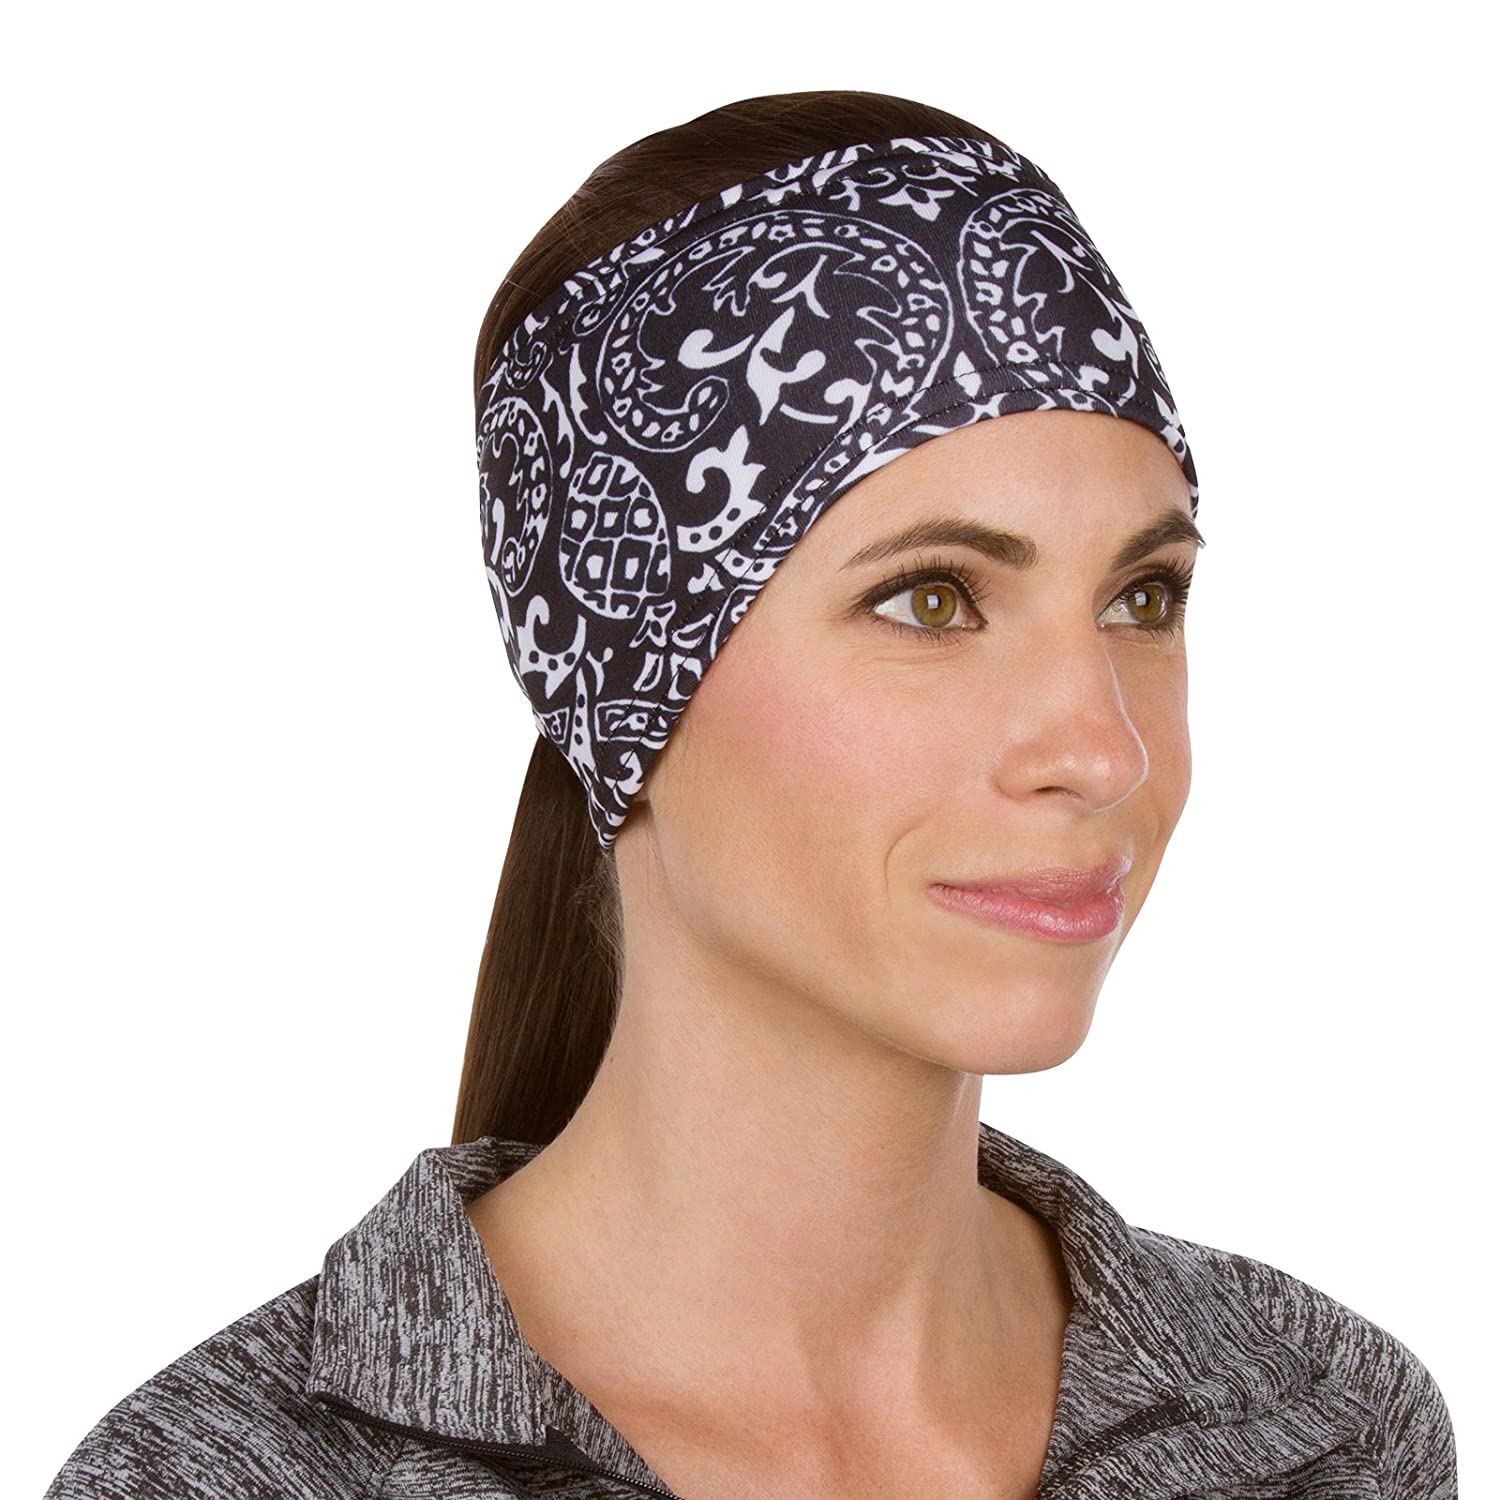 TrailHeads Print Headband | Ear Warmer and Ponytail Headband for Women